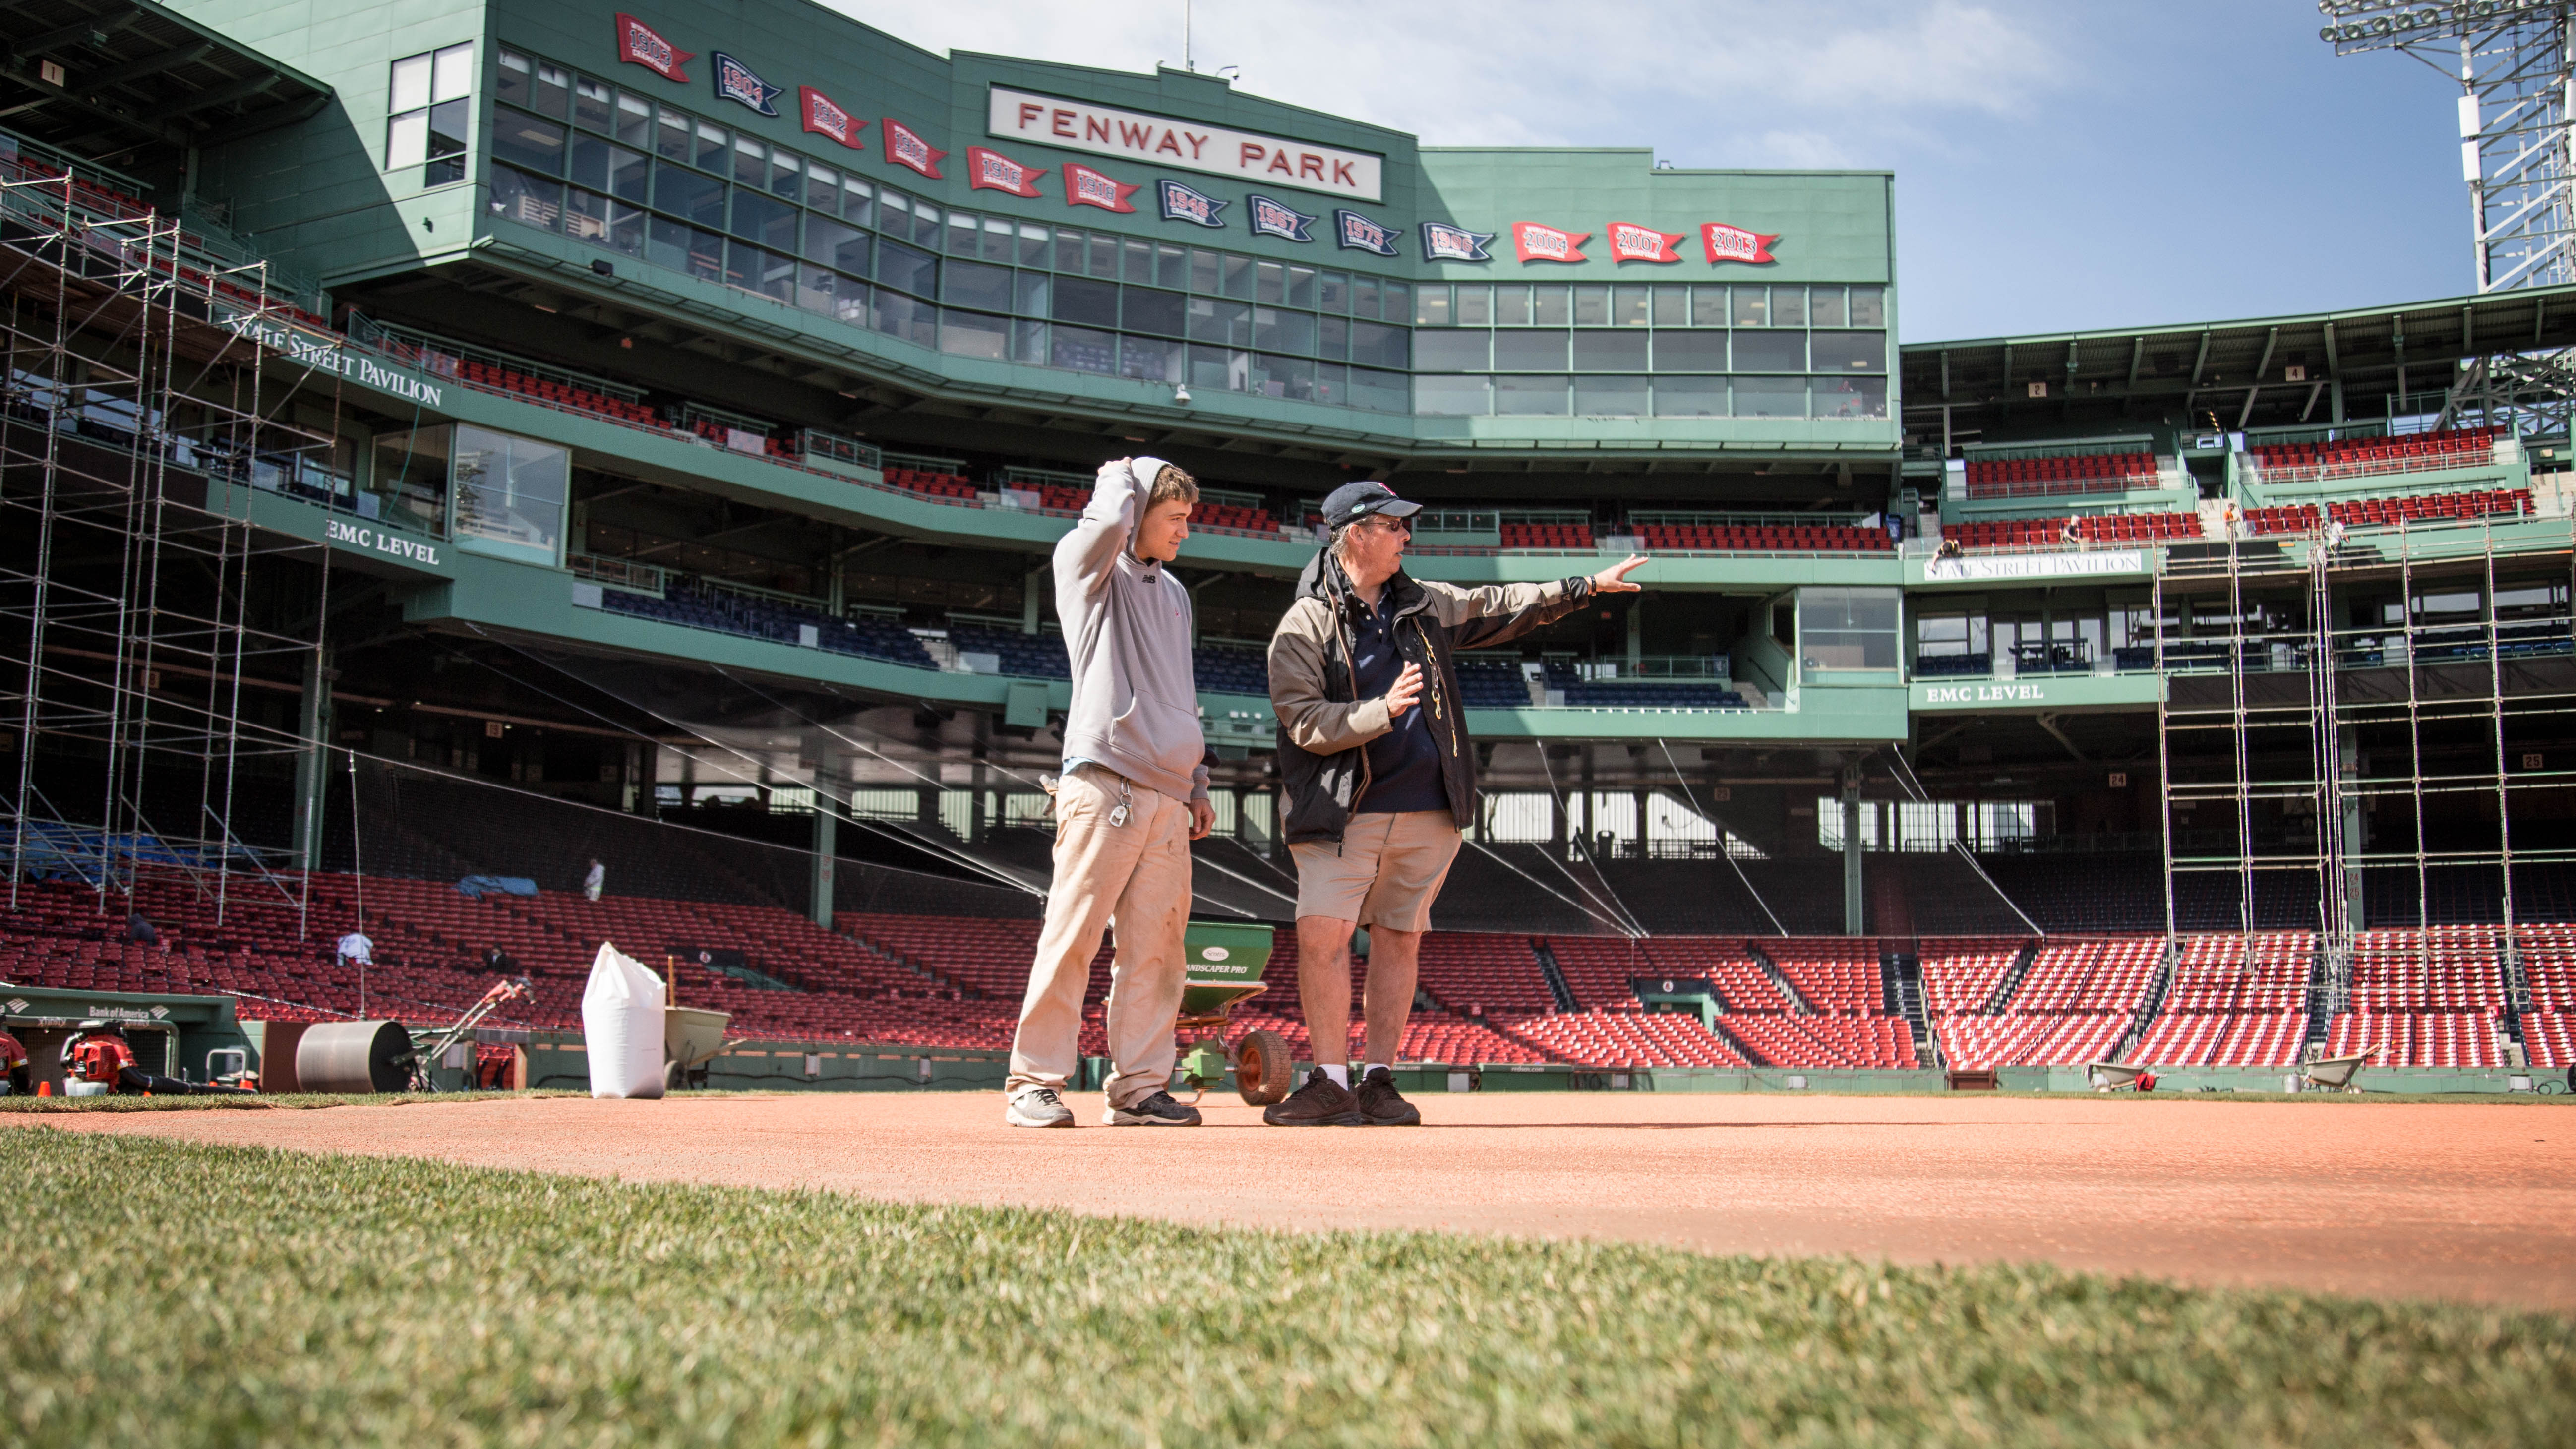 Red Sox groundskeeper Dave Mellor, right, instructs a team employee on his next move.